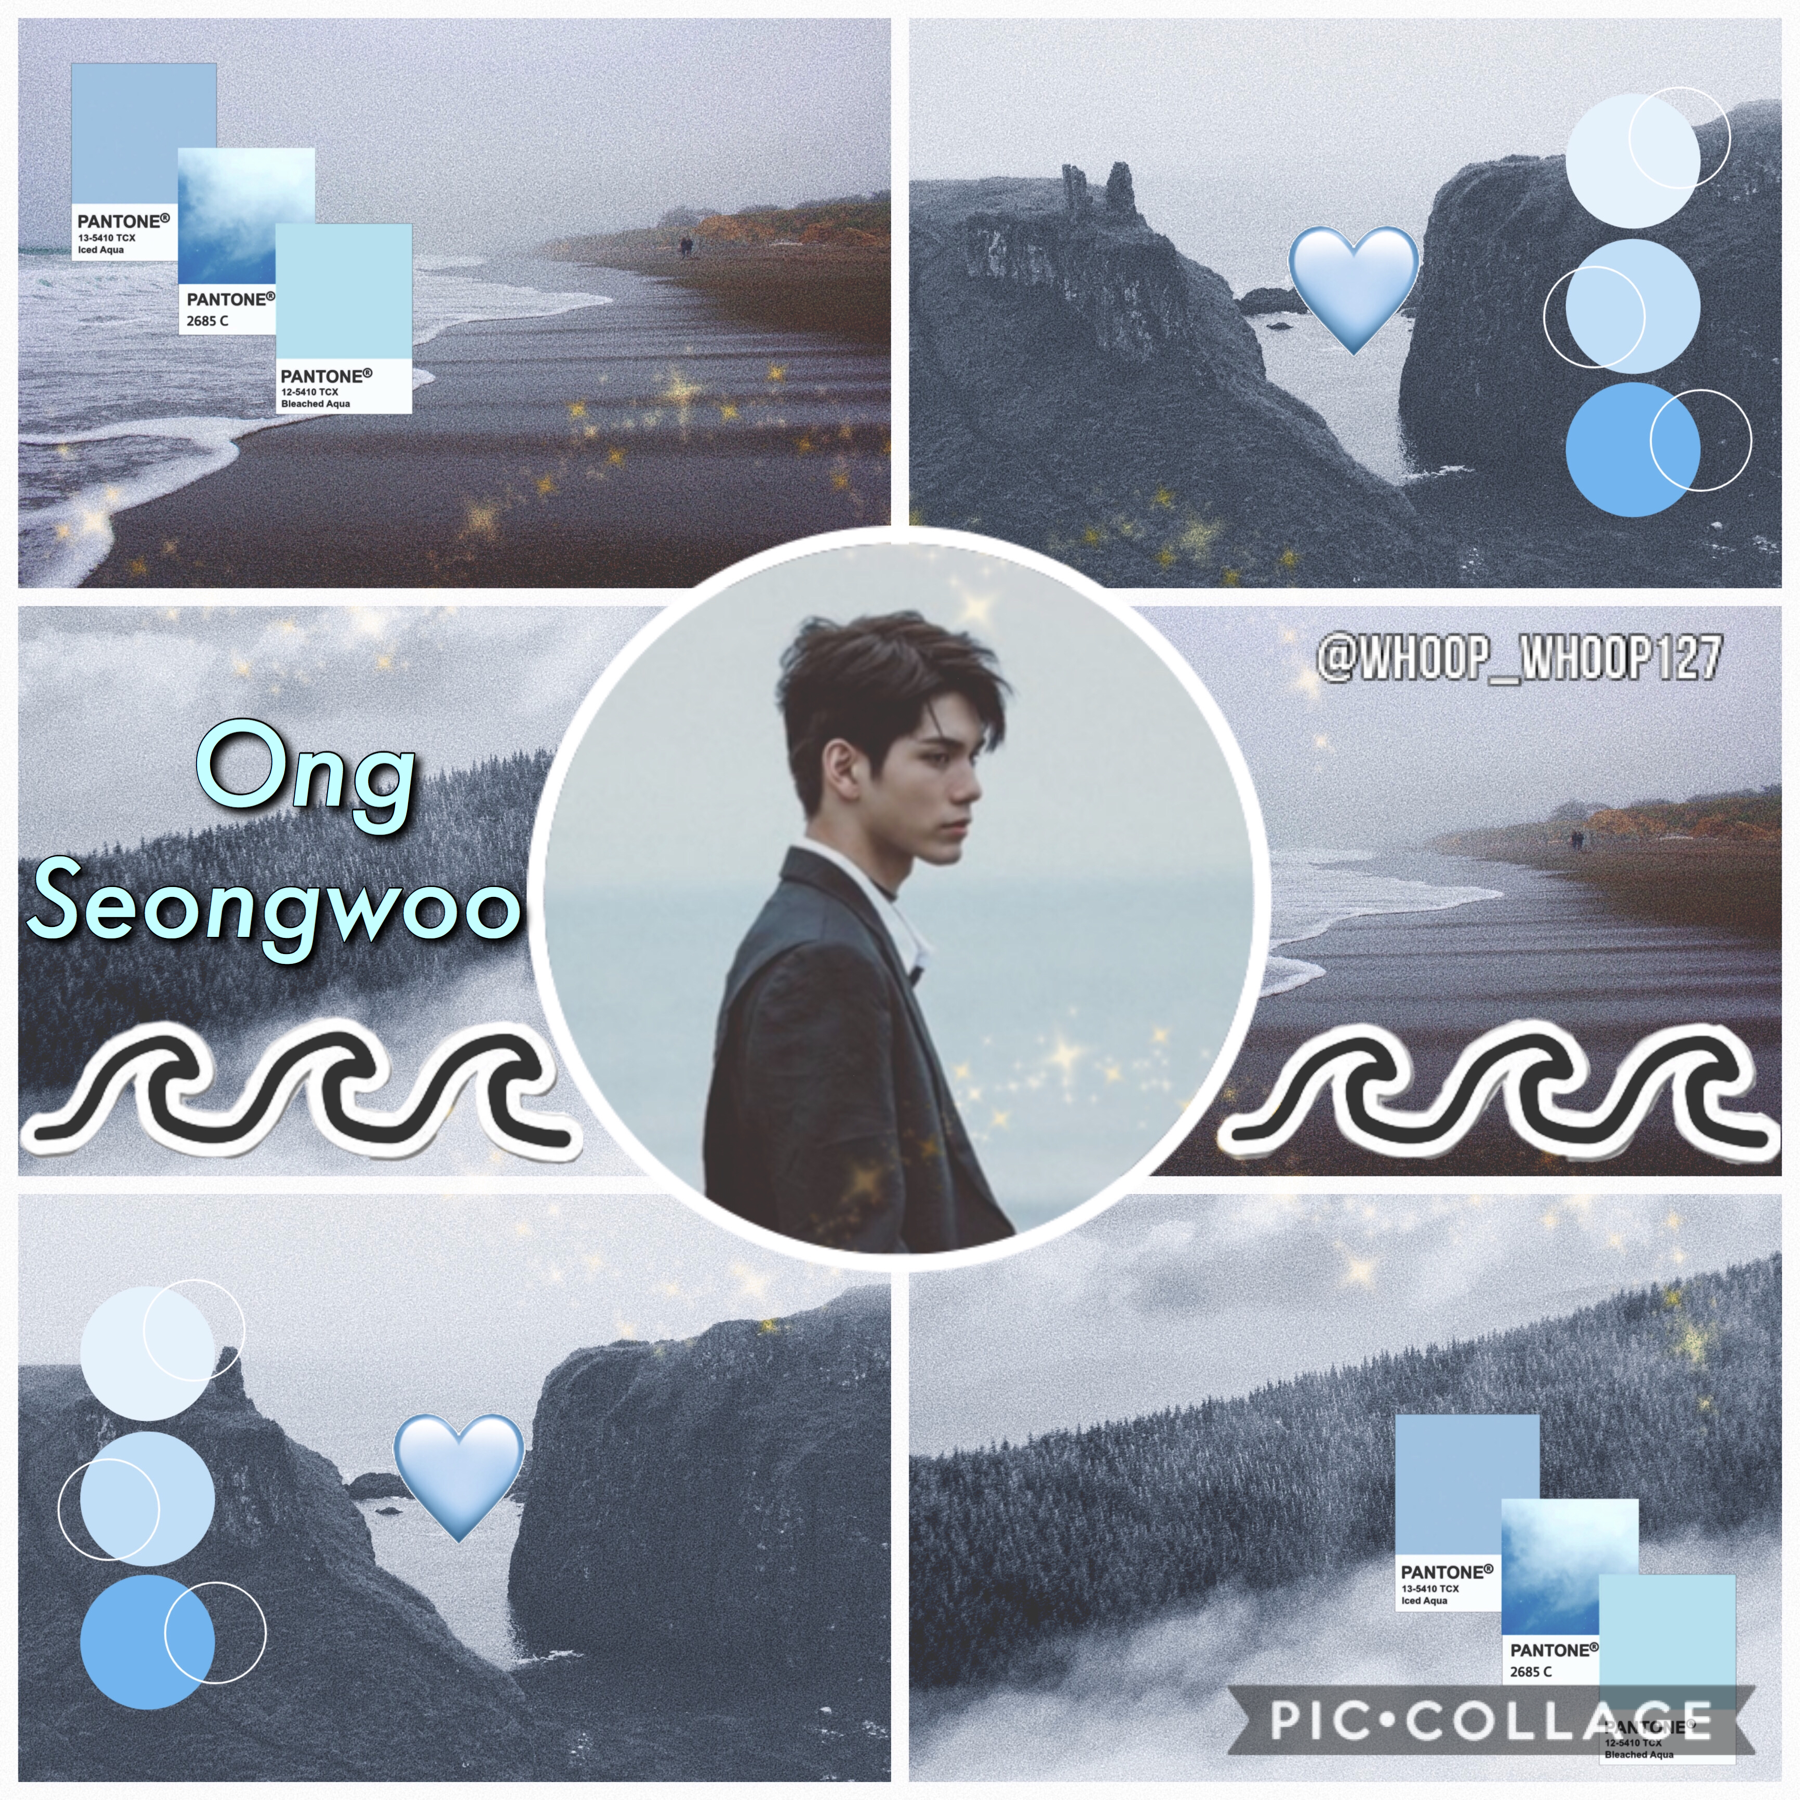 •🚒• ❄️Ong Seongwoo~ Wanna One, Solo, Actor❄️ Lowkey lost inspiration but I wanted to edit. Finals are over for me yay lol. Follow @Kpop_Birthdays if you don't already bc I'm way active on that account at this point🤭🥺 I missed you all!💞💞